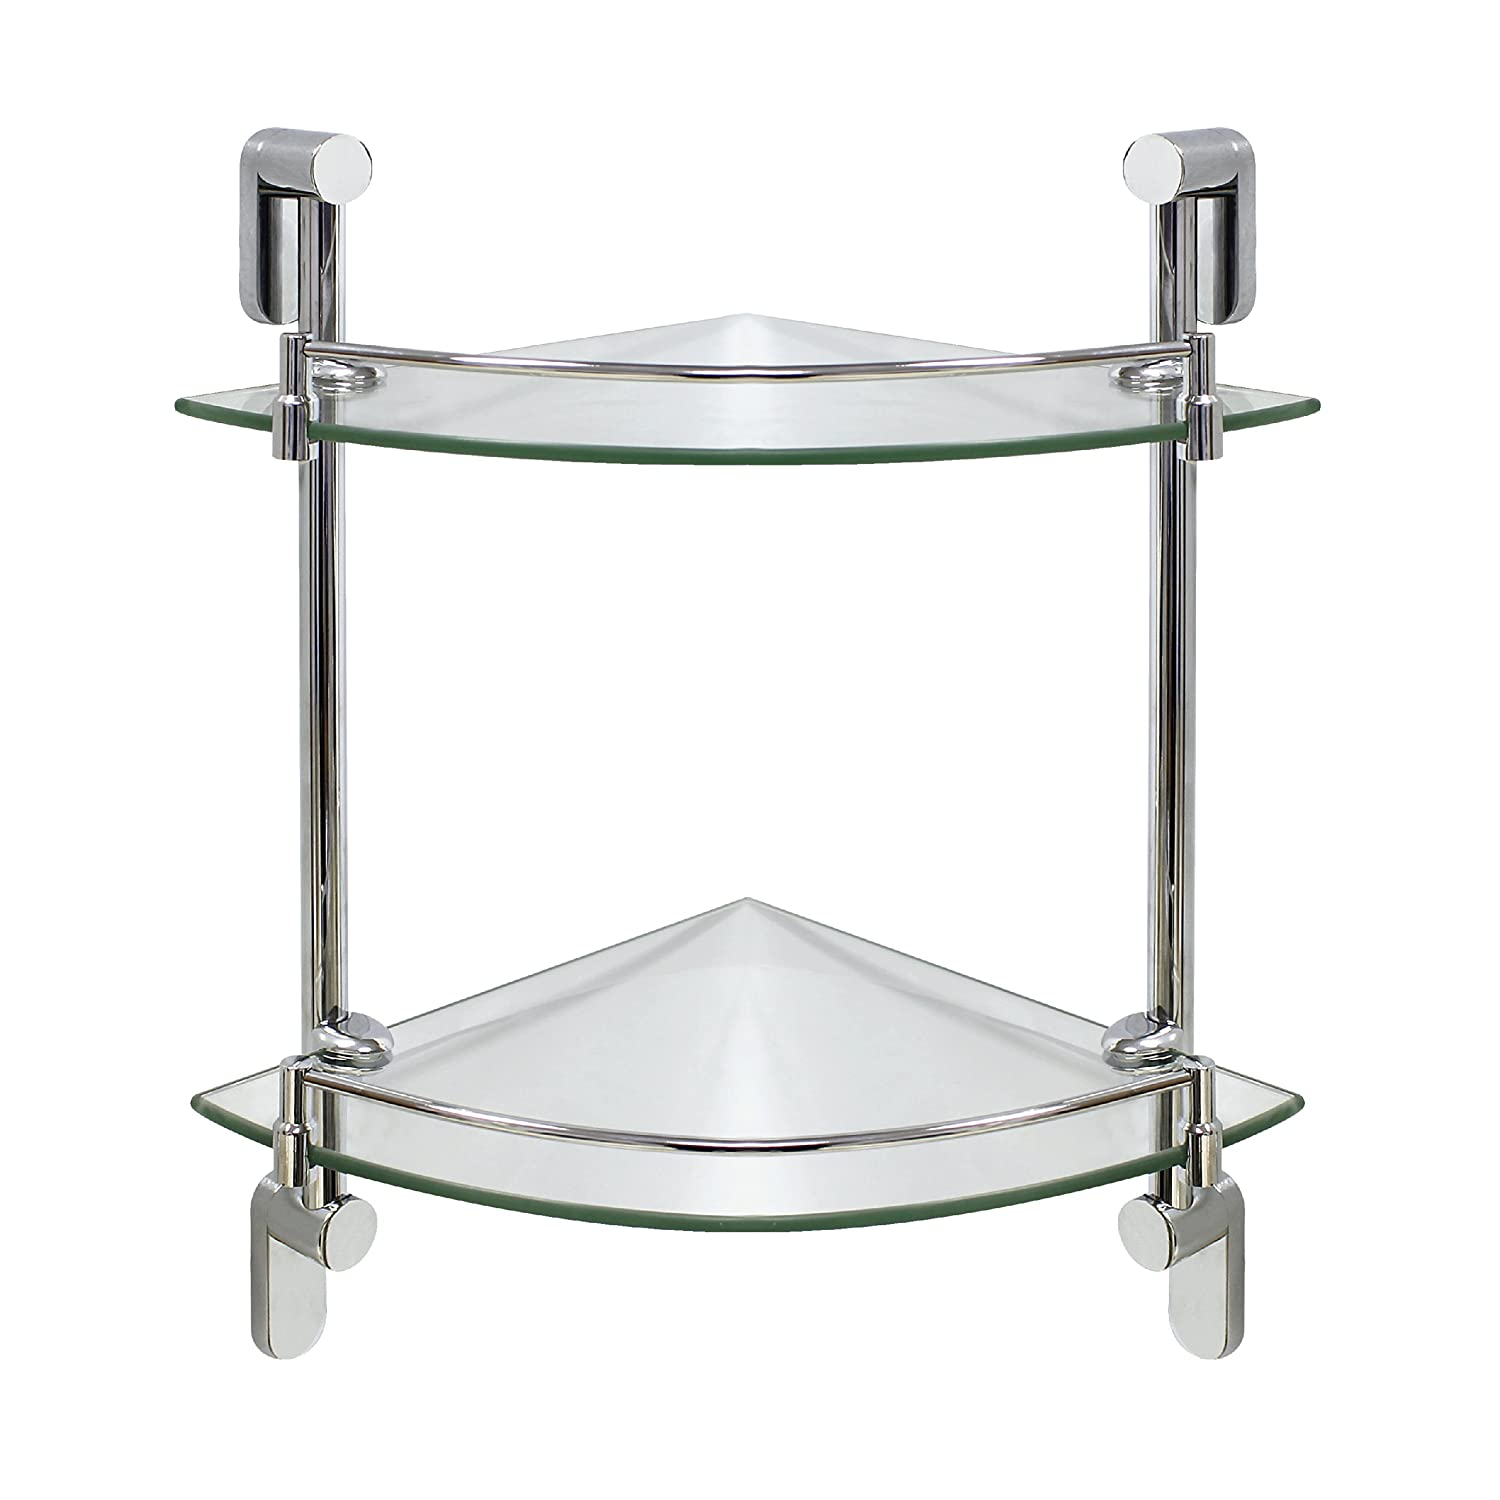 Amazon.com: MODONA Double Corner Glass Shelf With Rail U2013 Polished Chrome U2013  Oval Series   5 Year Warrantee: Home U0026 Kitchen